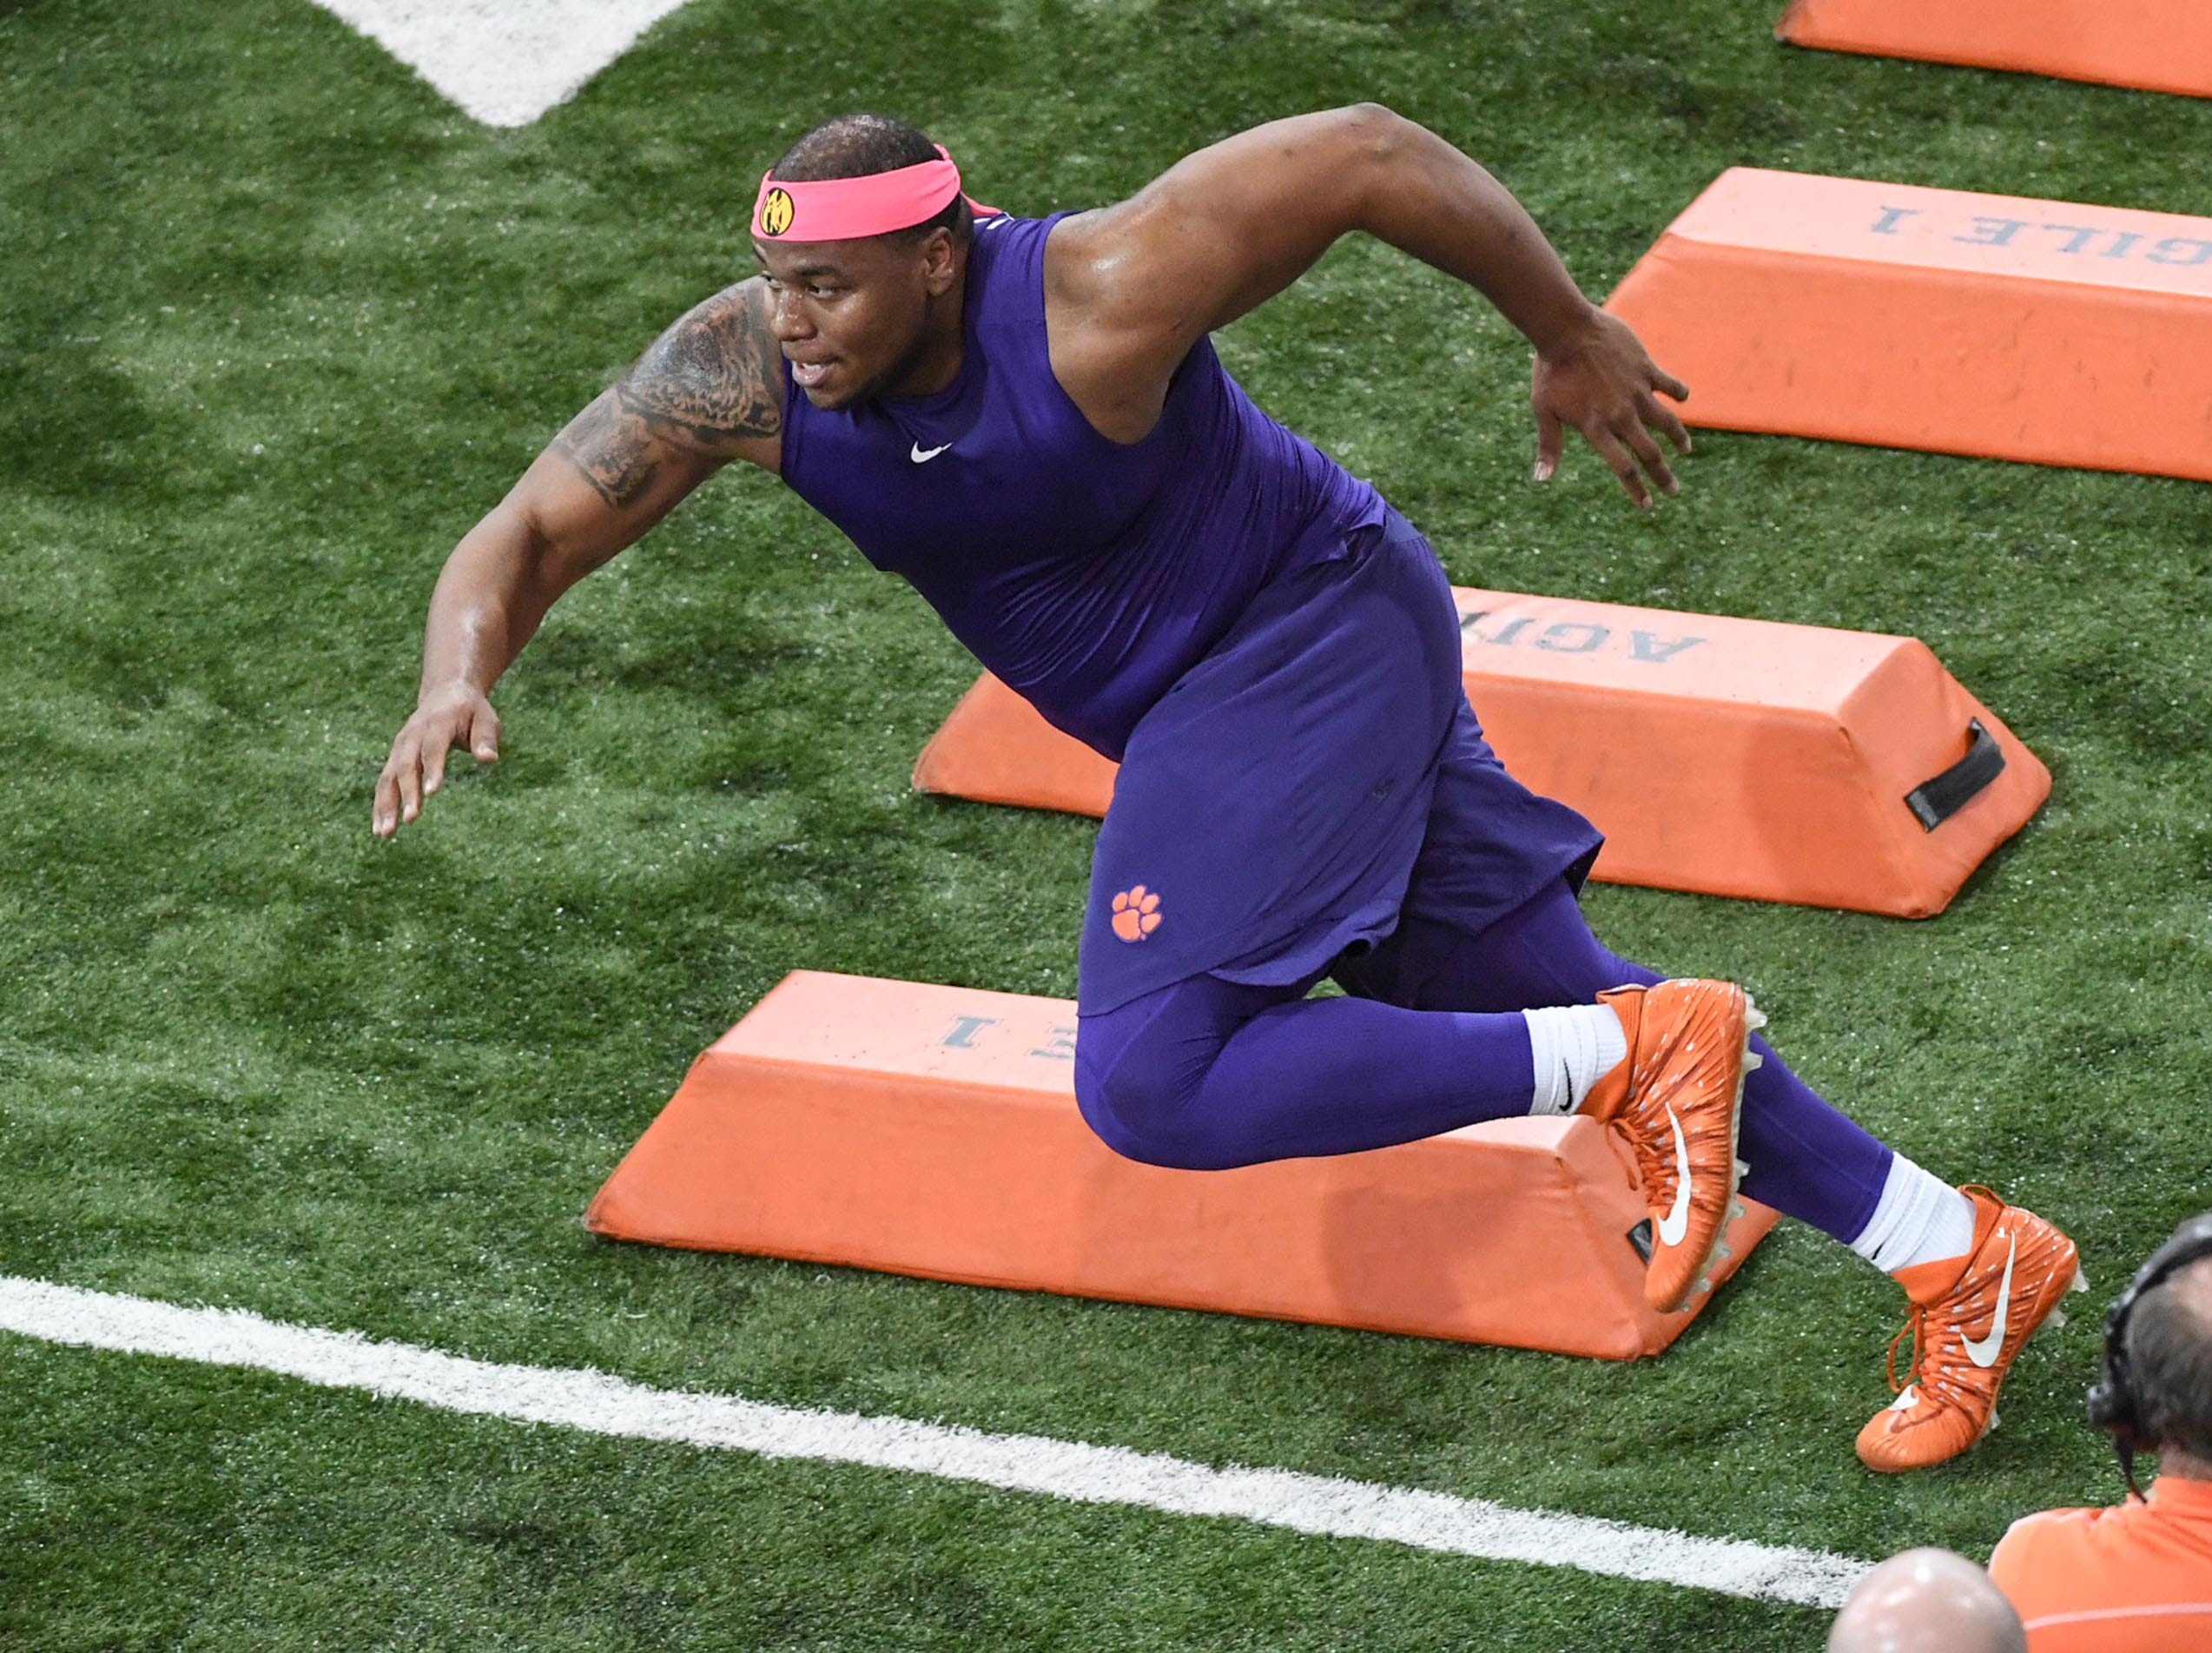 Defensive lineman Dexter Lawrence runs through barriers during Clemson pro day at the Poe Indoor Facility in Clemson Thursday, March 14, 2019.